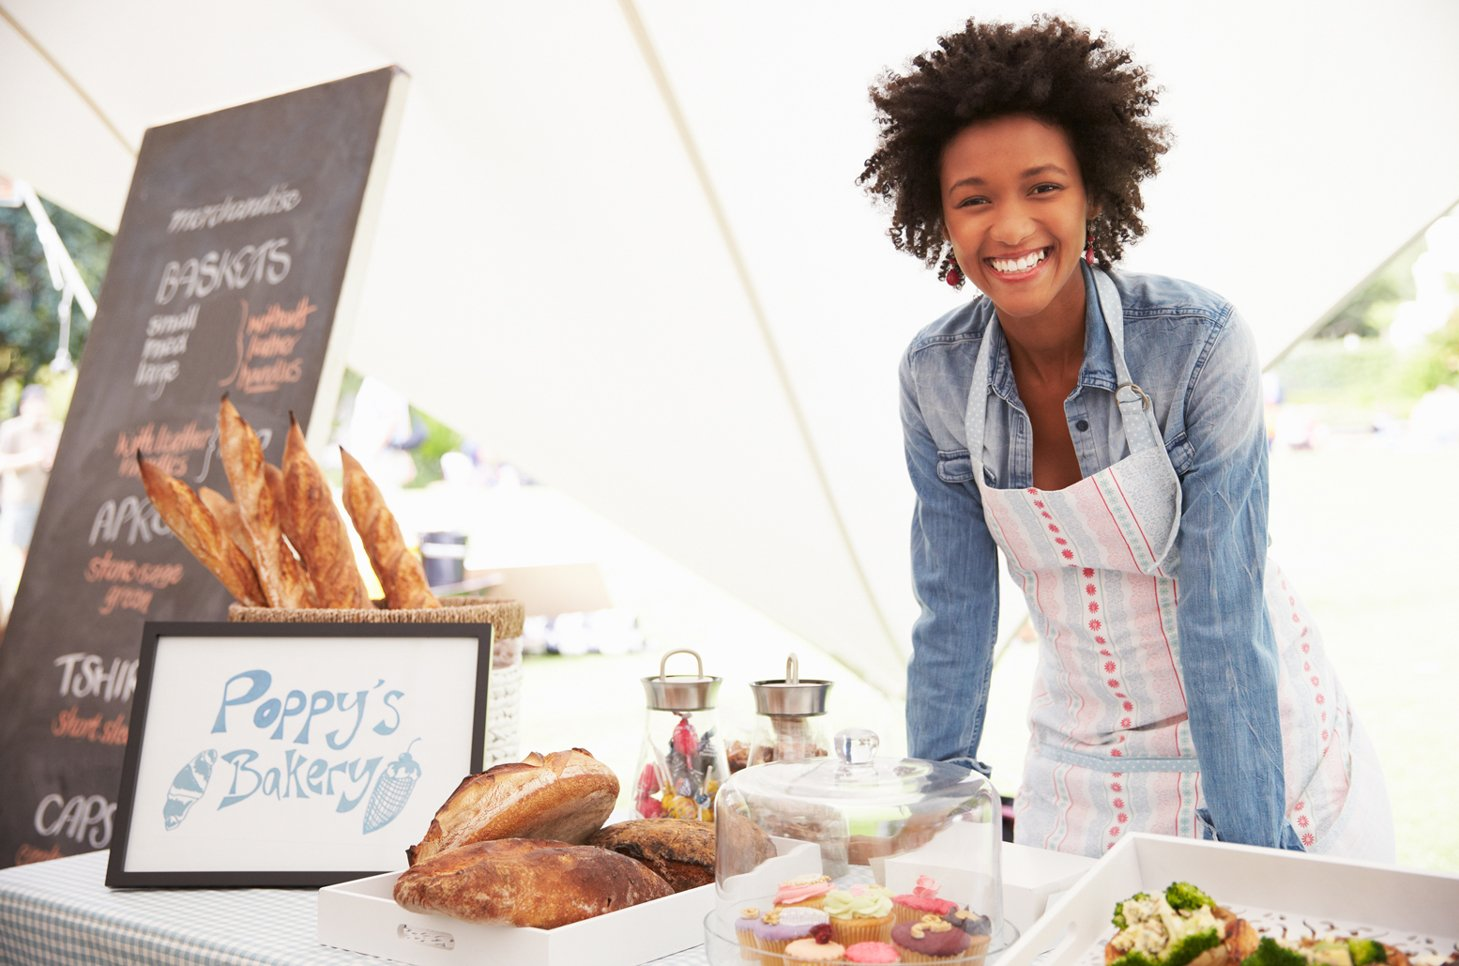 Female bakery employee smiling, leaning on counter with baked goods